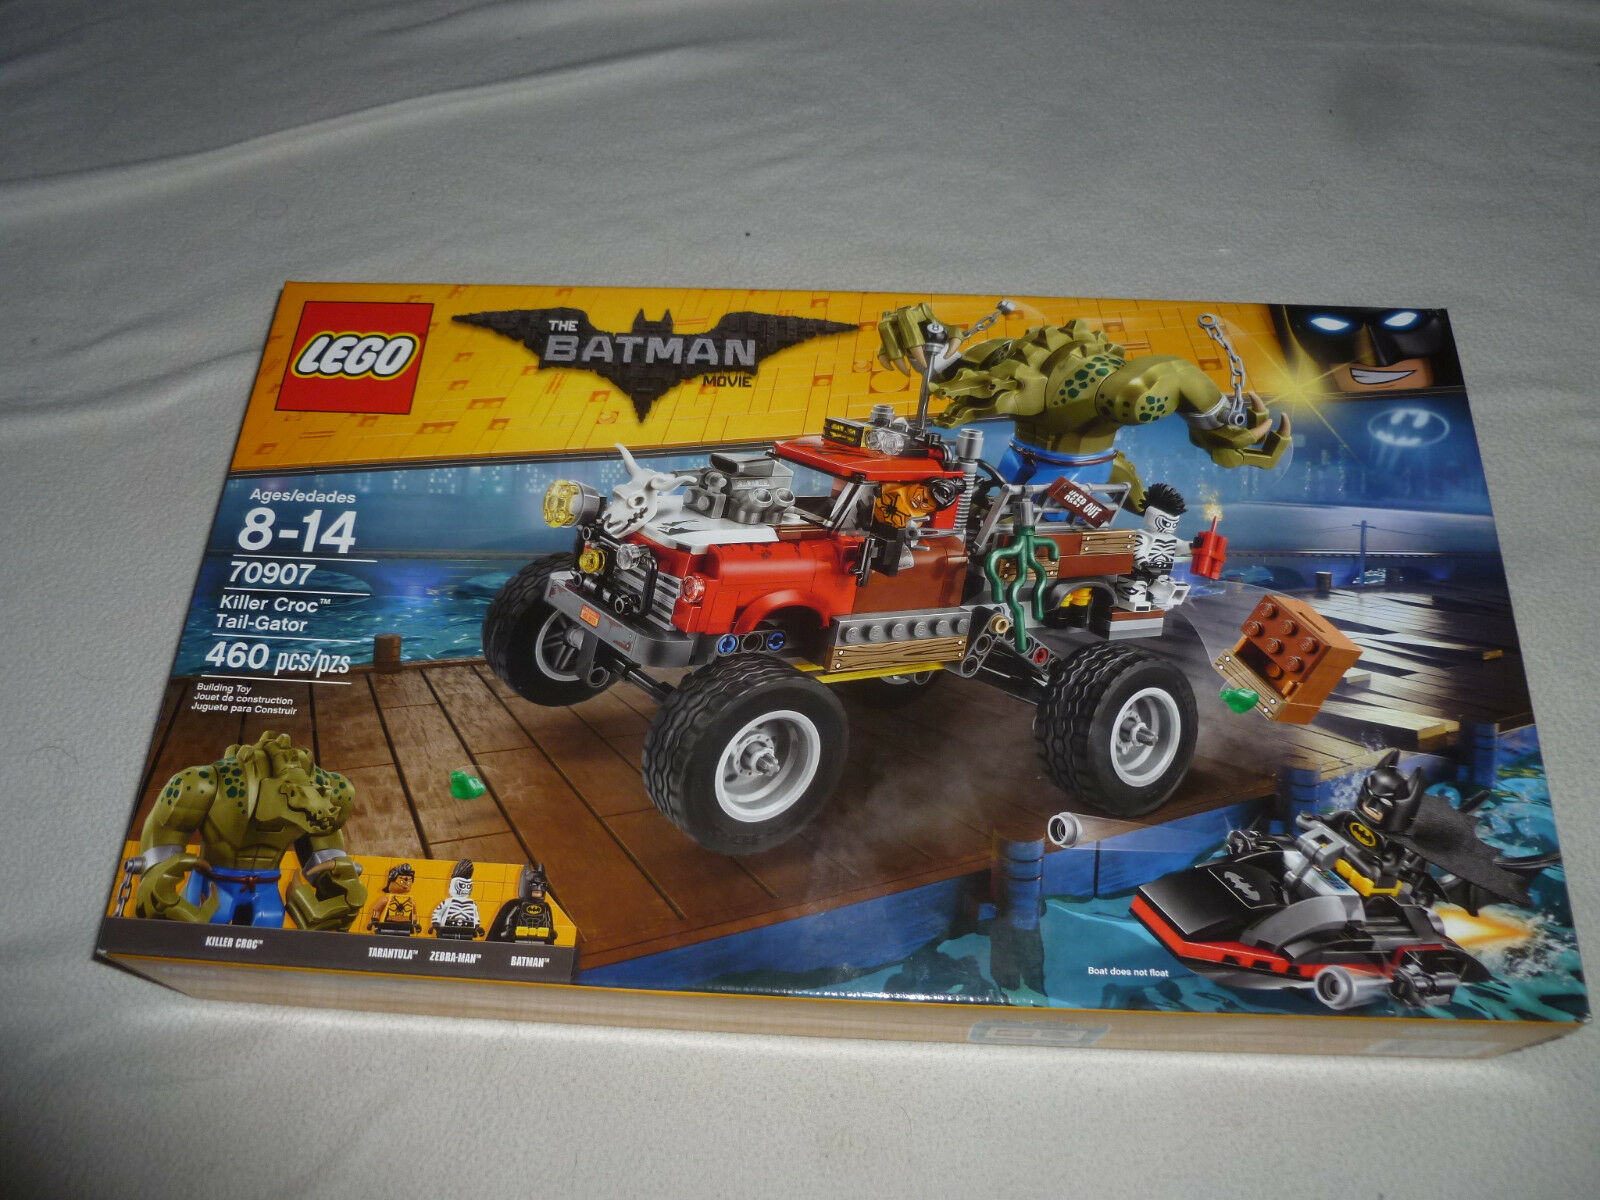 NEW LEGO SET KILLER CROC TAIL-GATOR 70907 THE BATMAN MOVIE 460 PCS TARANTULA NIB